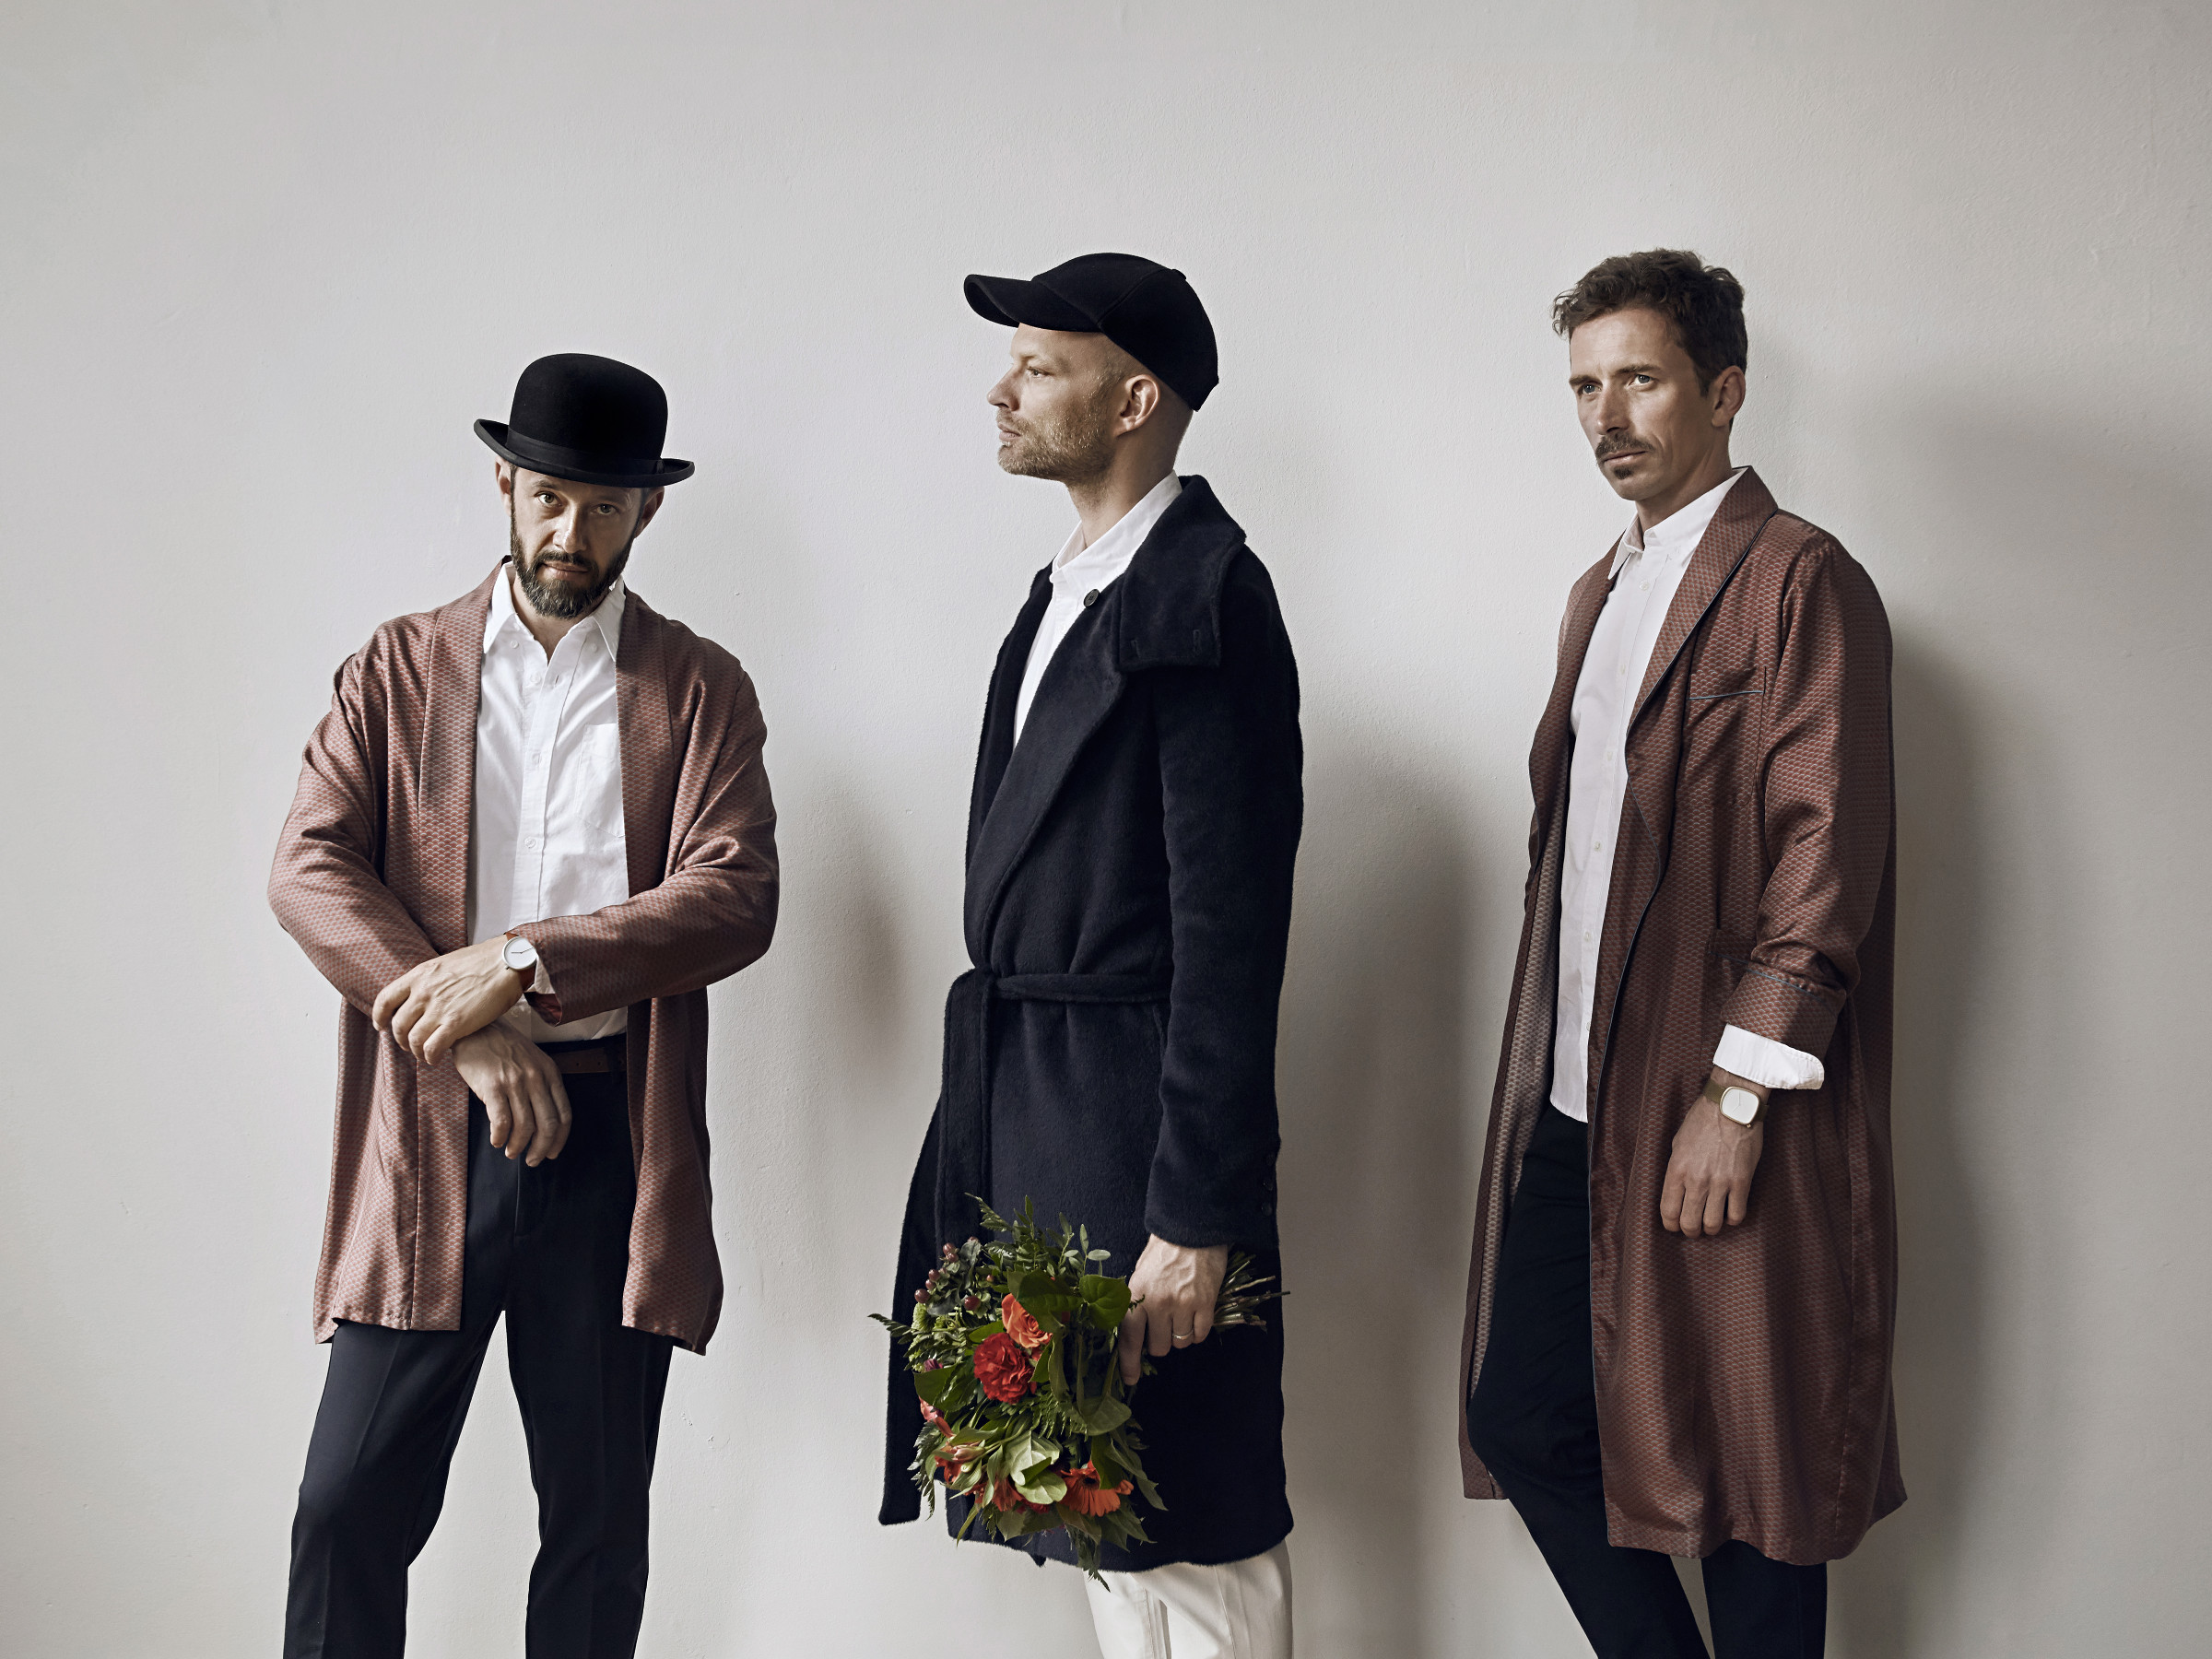 Band WhoMadeWho